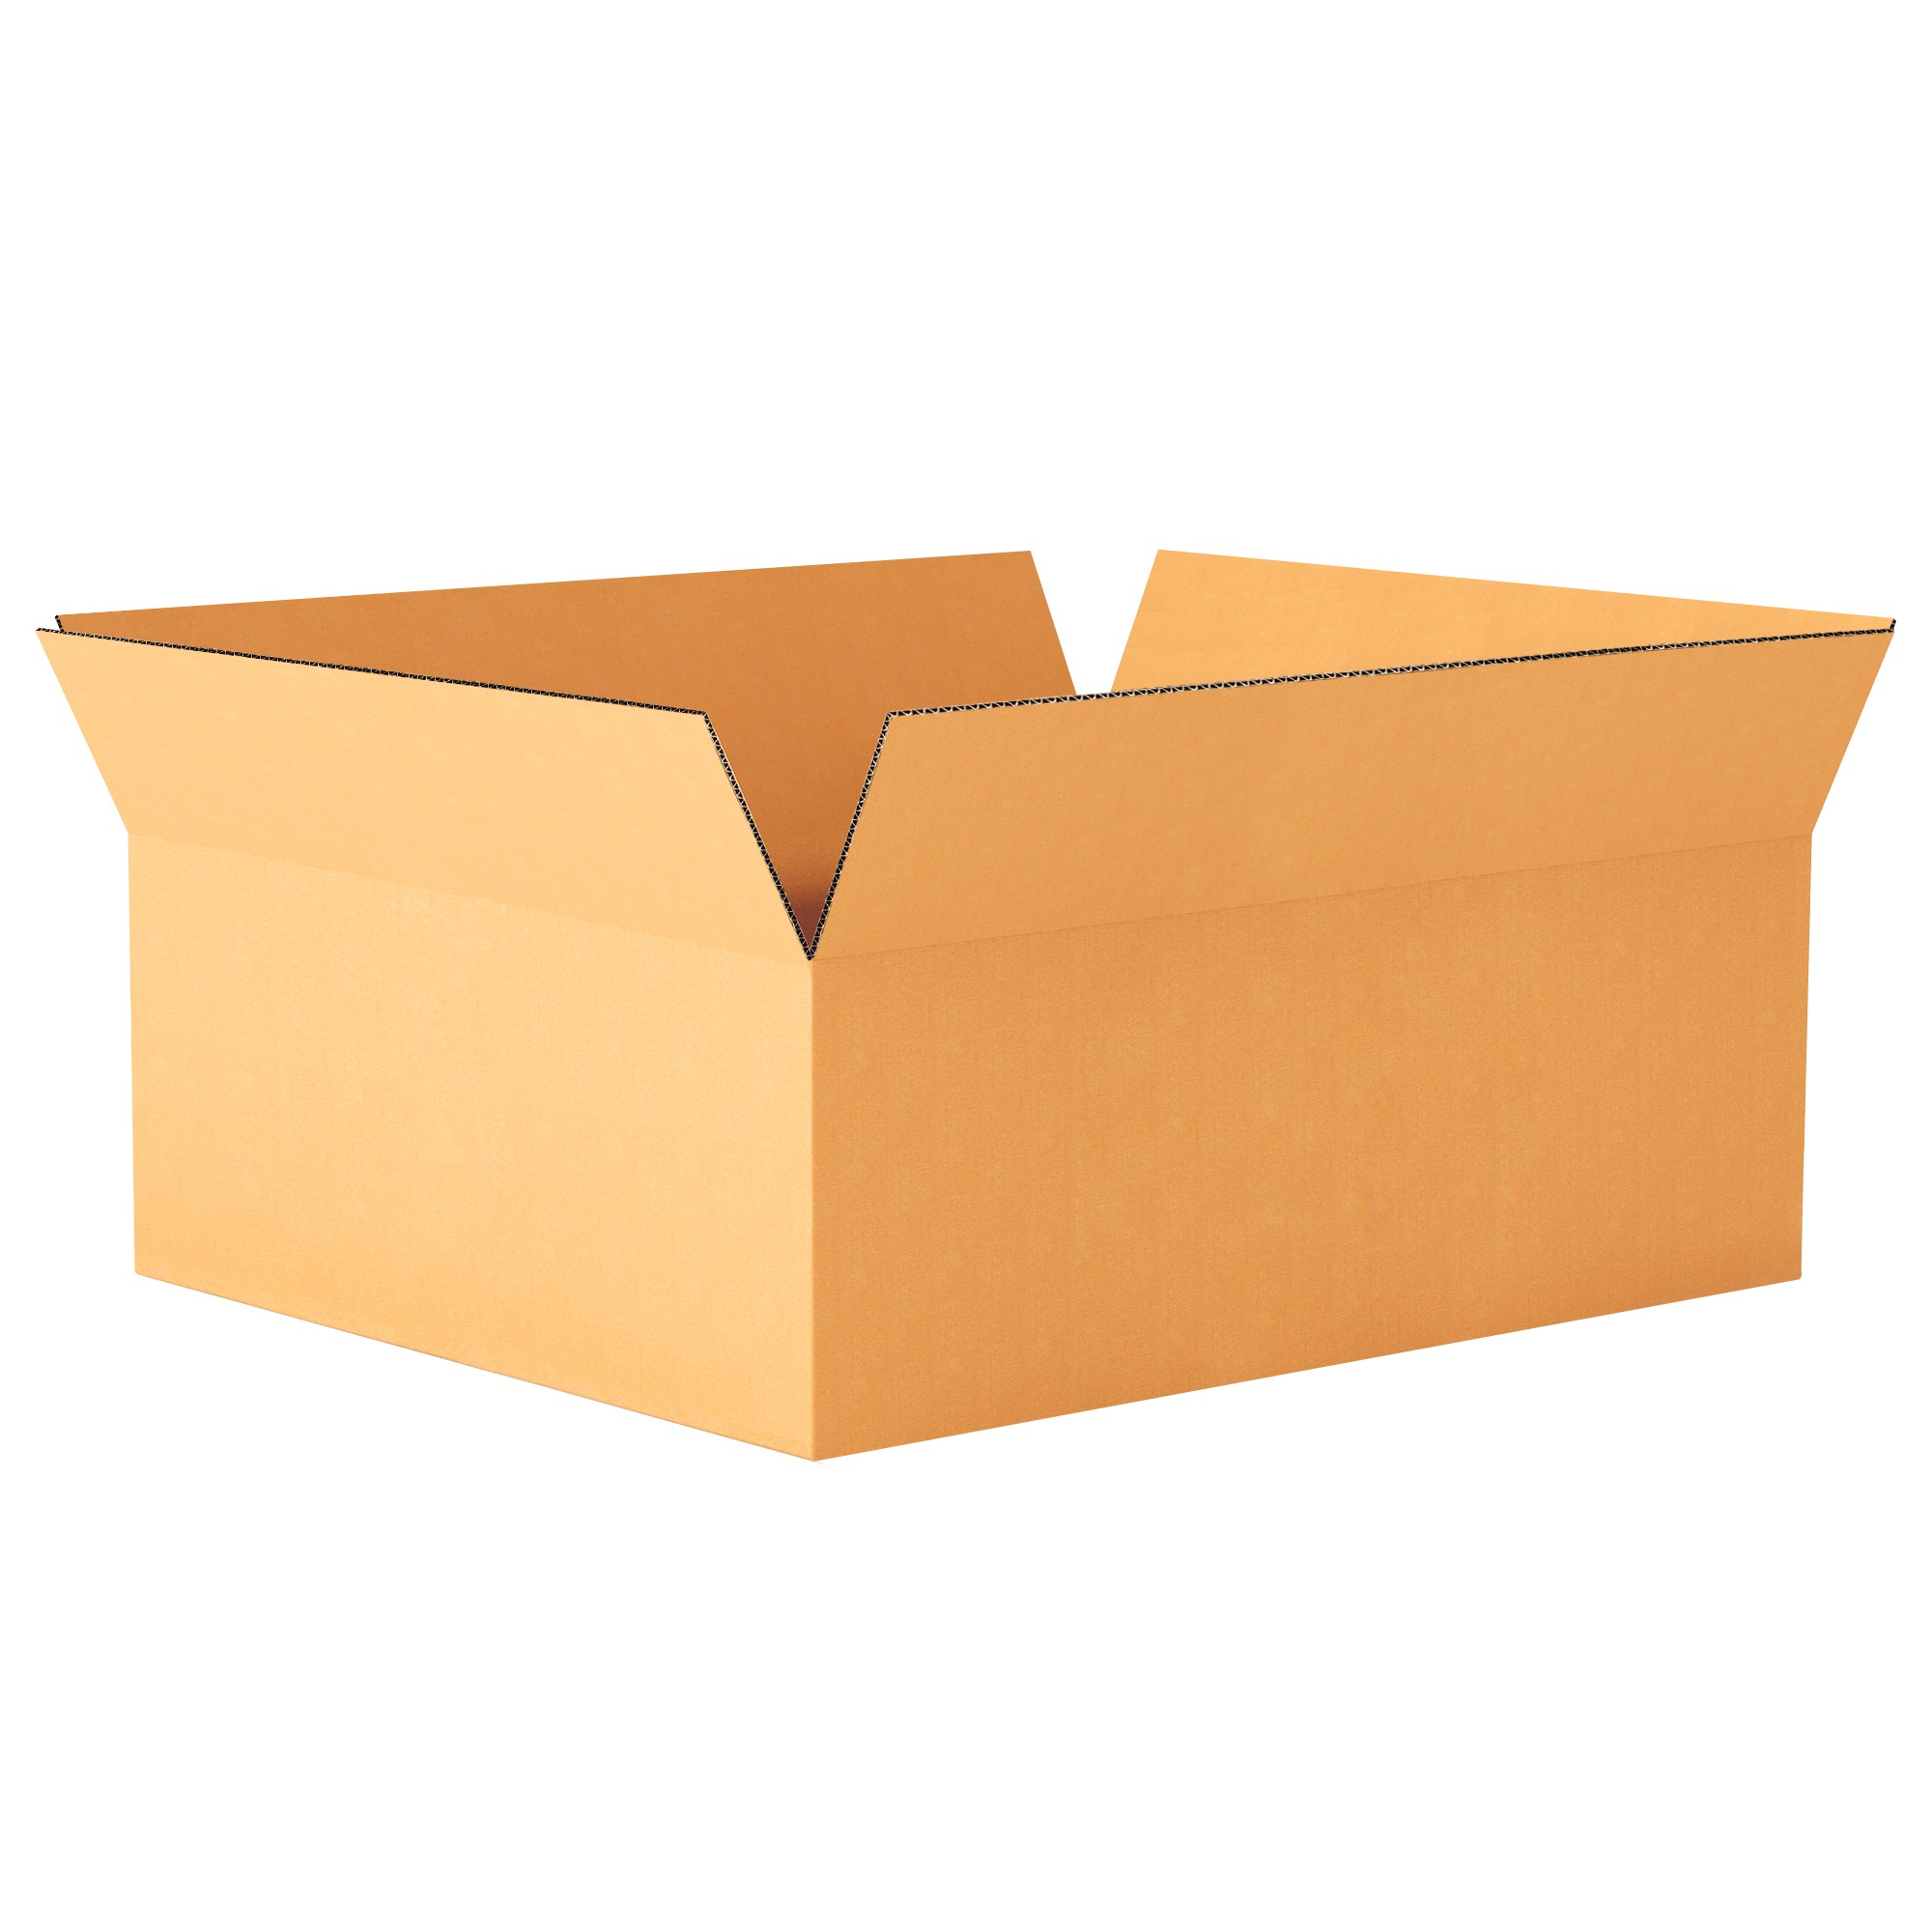 "TOTALPACK® 18 x 18 x 24"" Single Wall Corrugated #50 Large Boxes 15 Units"